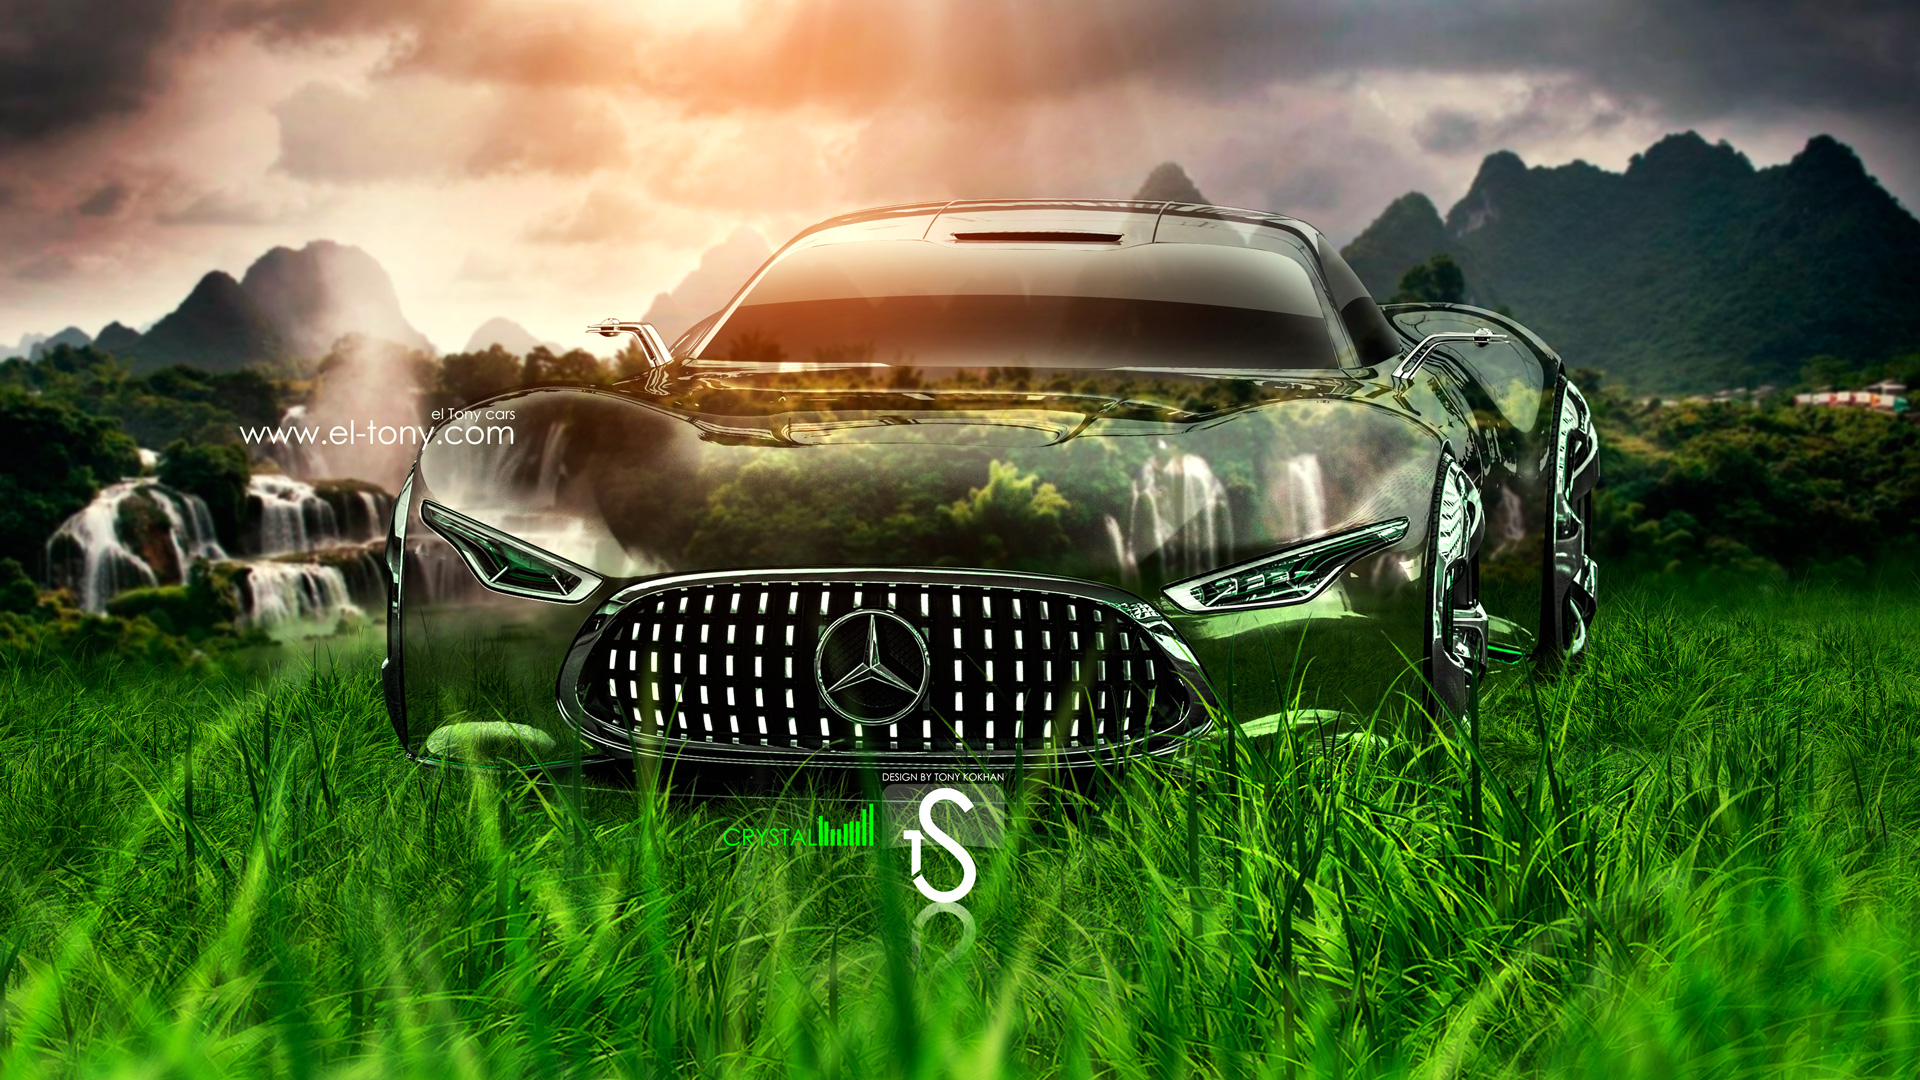 Merveilleux Mercedes Benz Vision Gran Turismo Crystal Nature Car